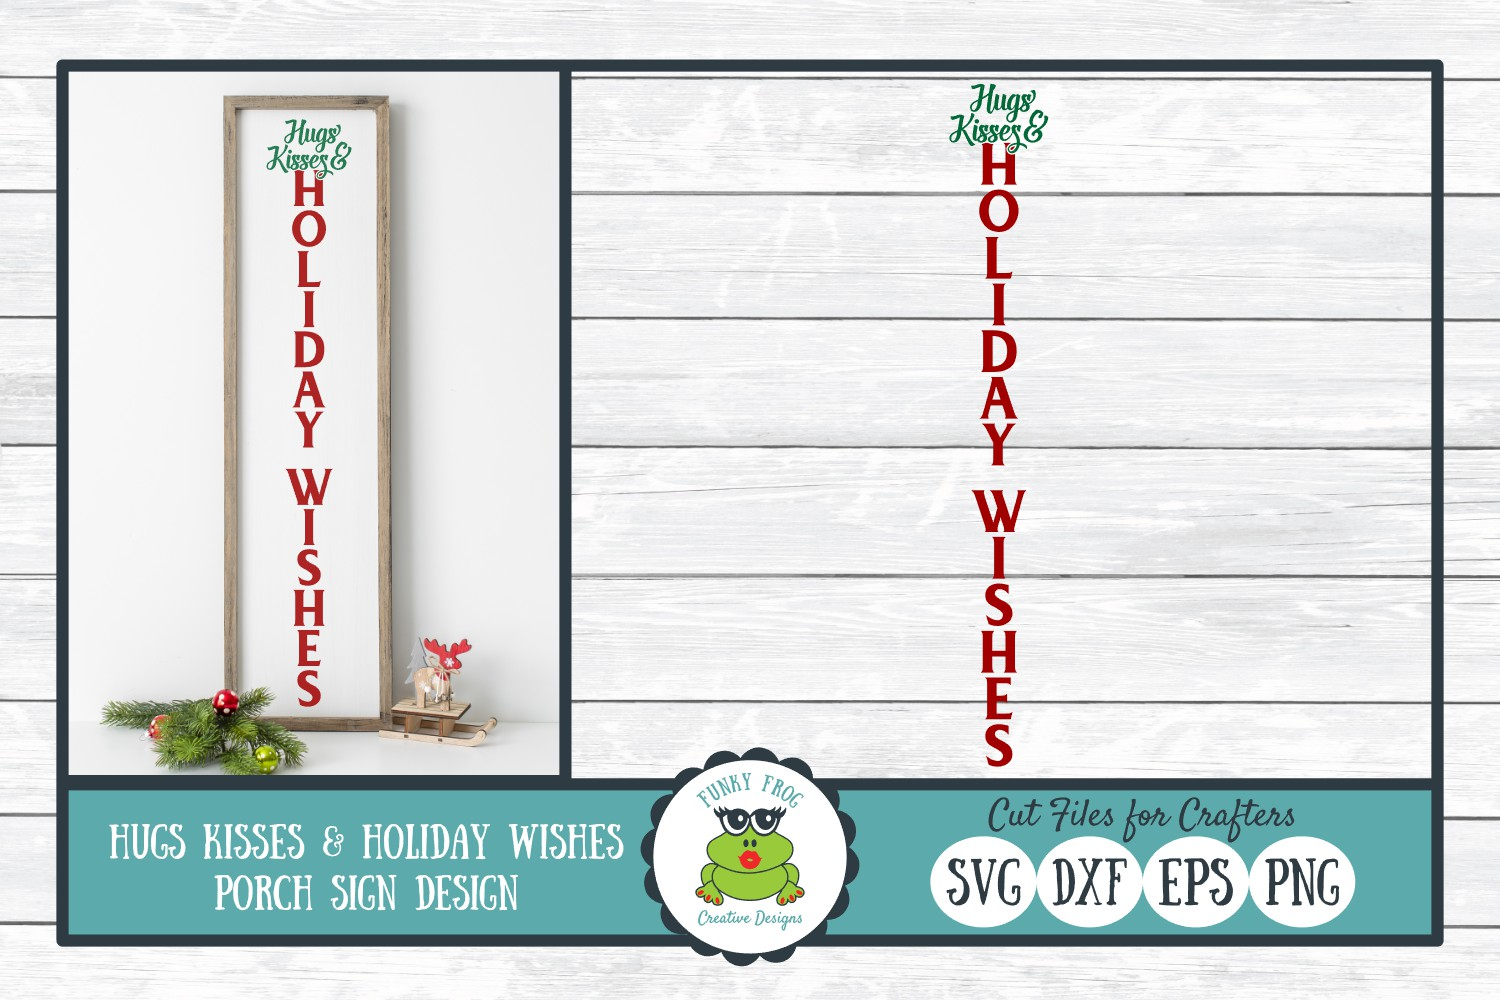 Hugs Kisses & Holiday Wishes Porch Sign Design example image 1